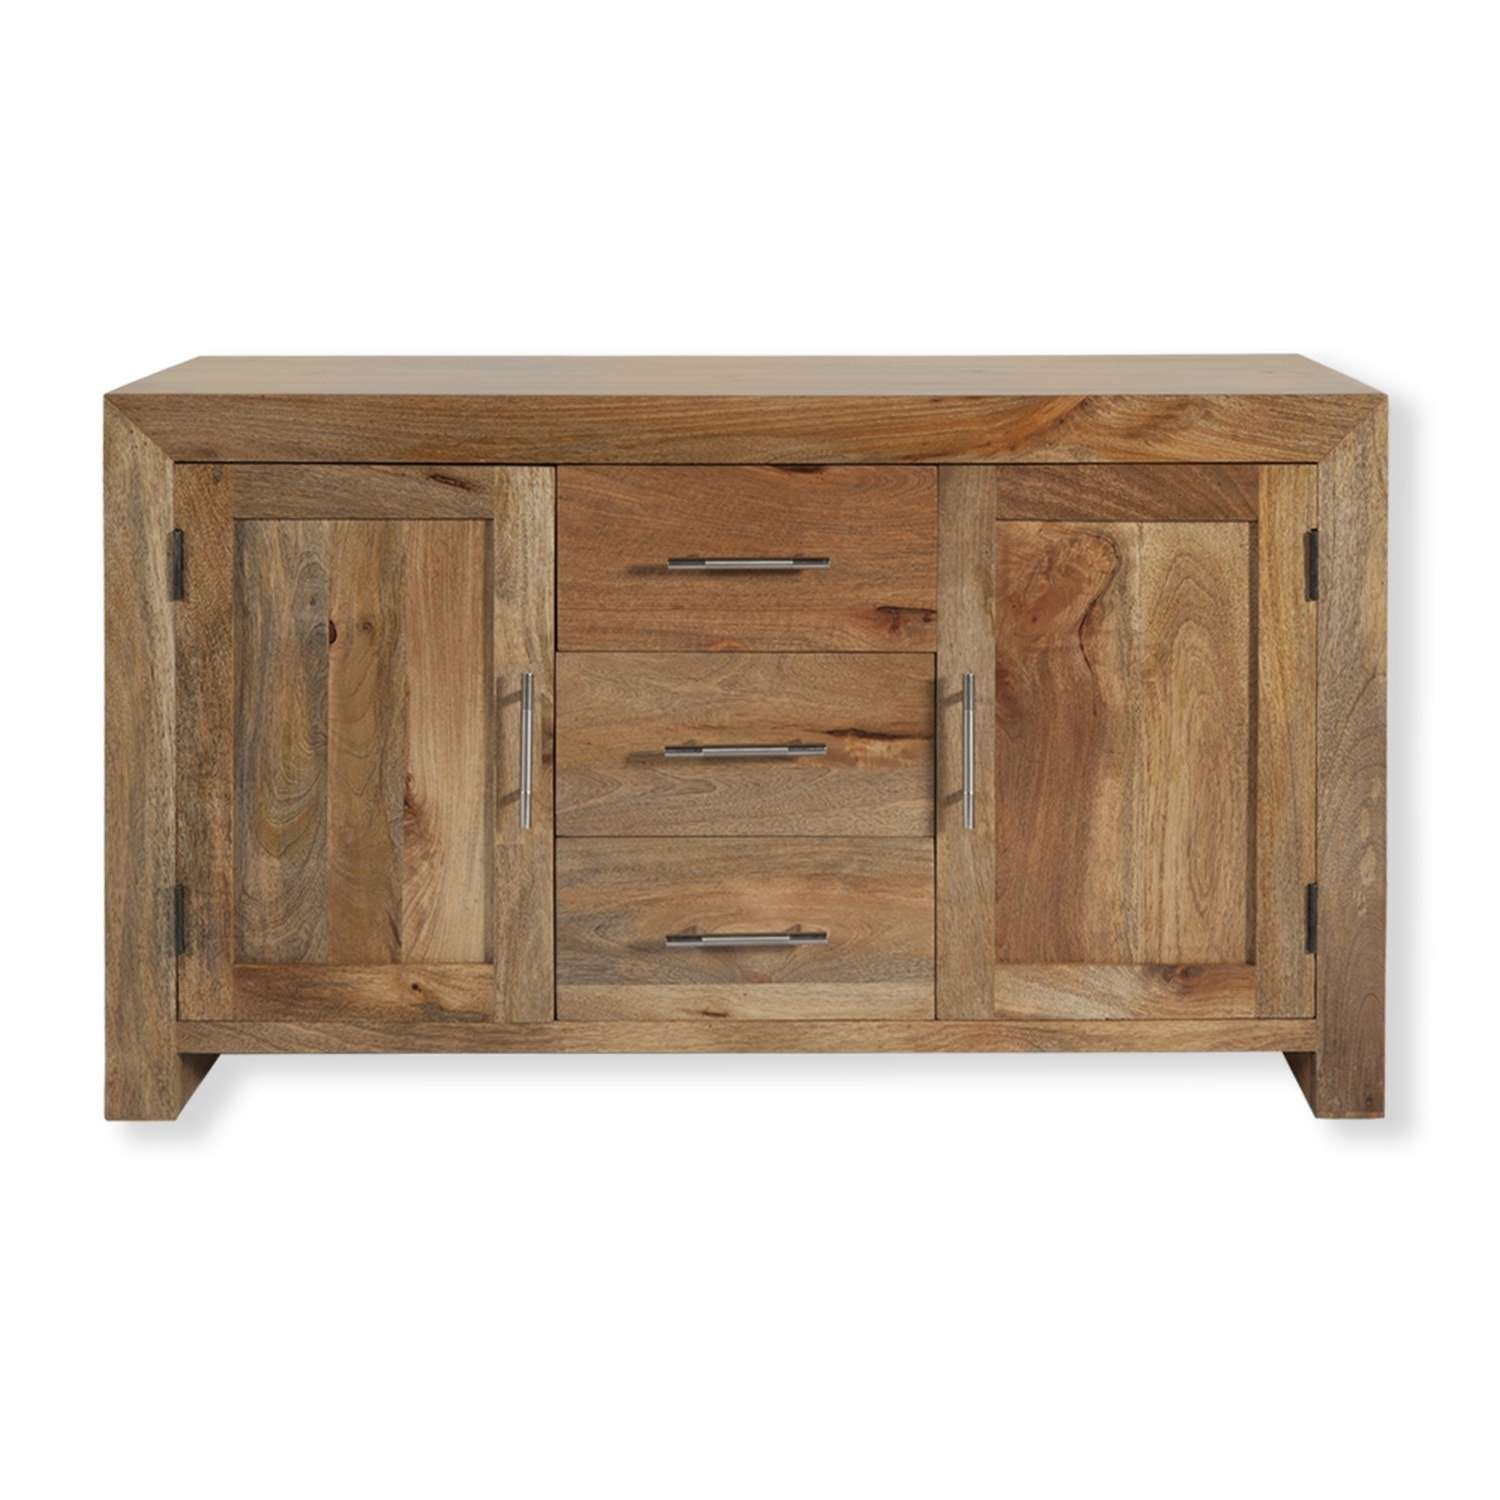 Sideboards & Cabinets For Quirky Sideboards (View 7 of 20)